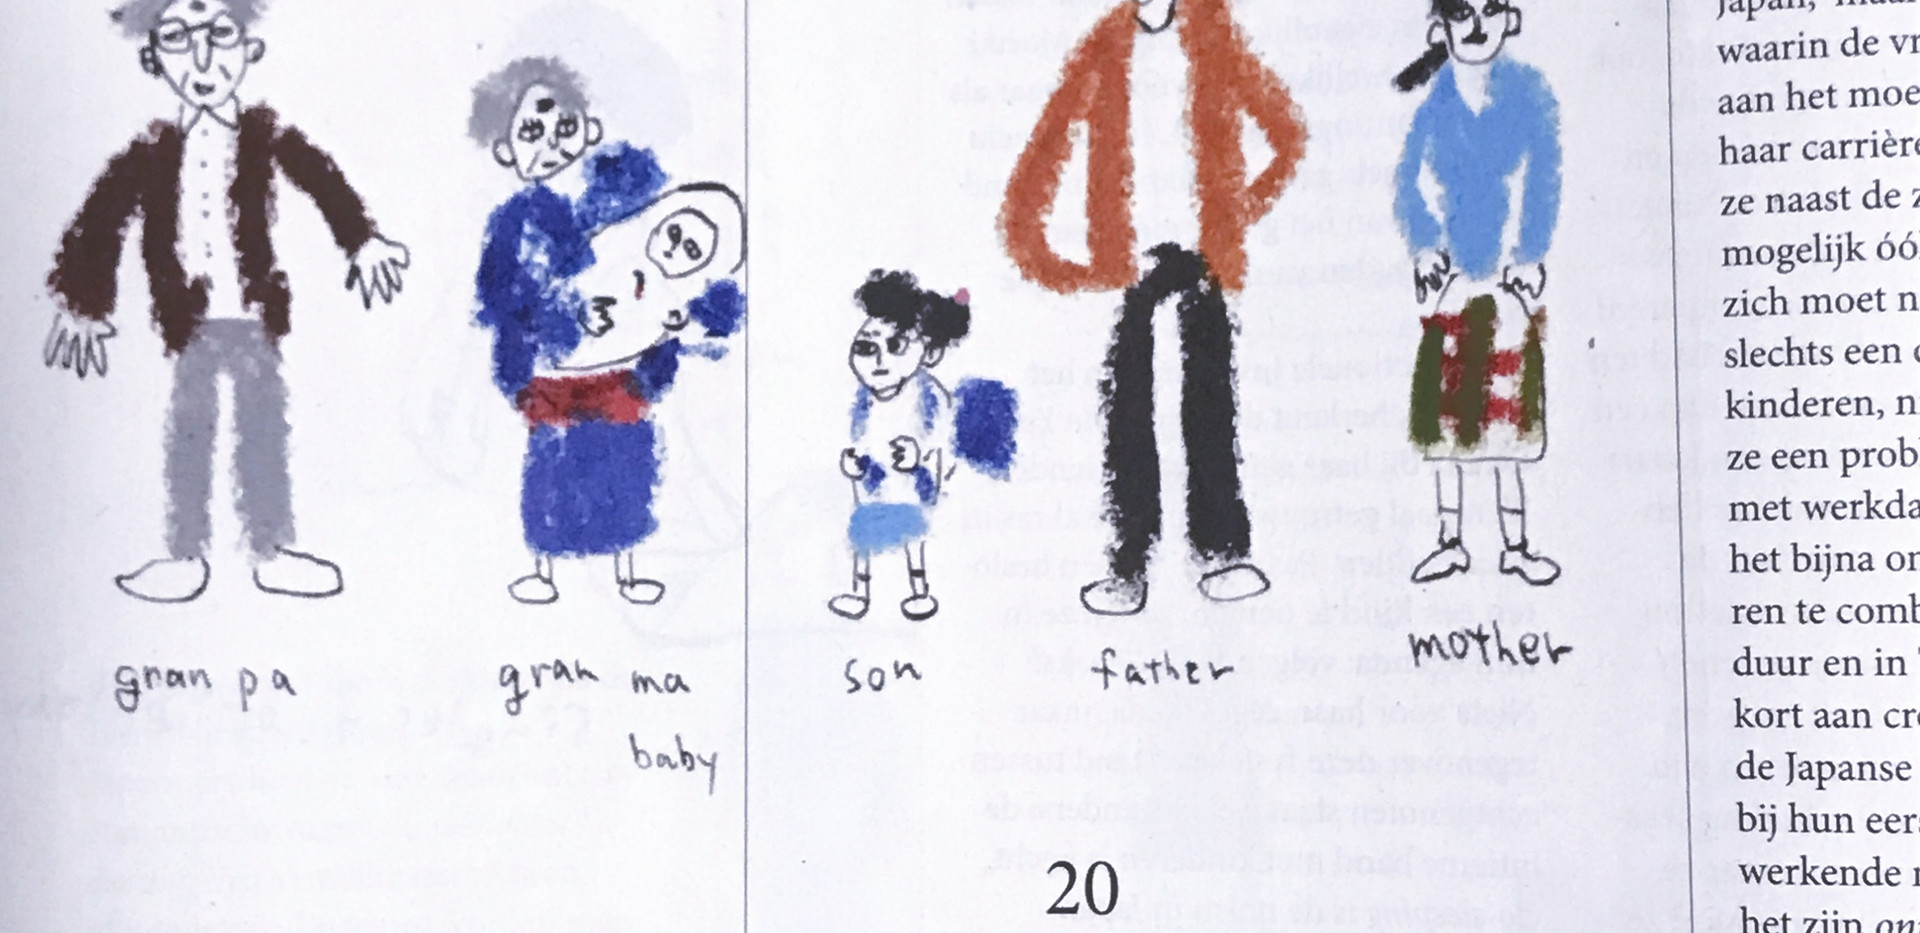 an Illustration about Japanese family forms